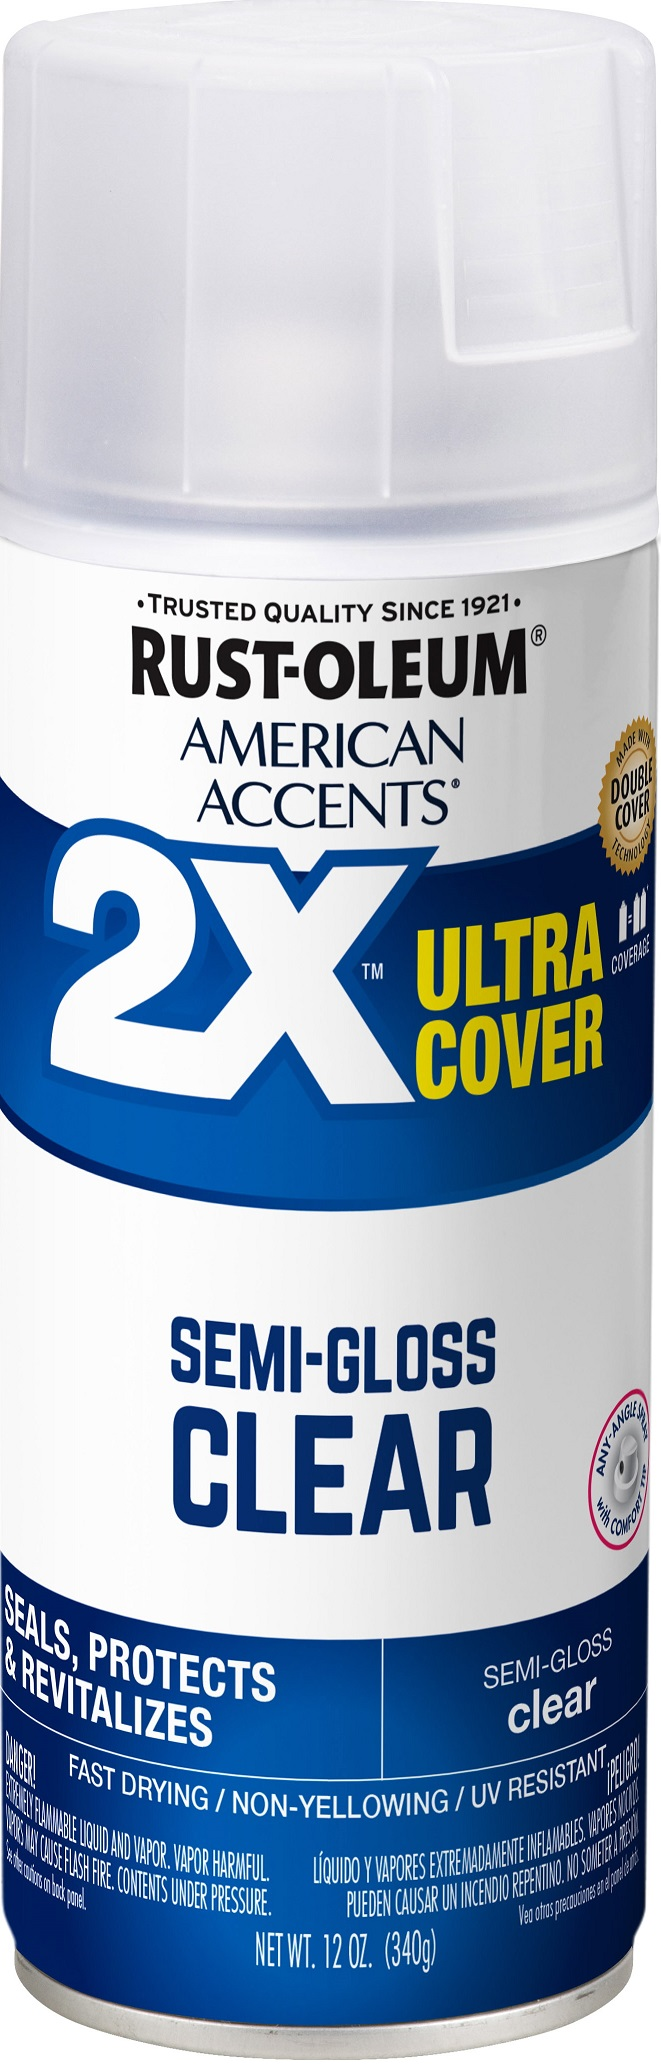 Rust-Oleum American Accents Ultra Cover 2X Semi-Gloss Clear Spray Paint and Primer in 1, 12 oz